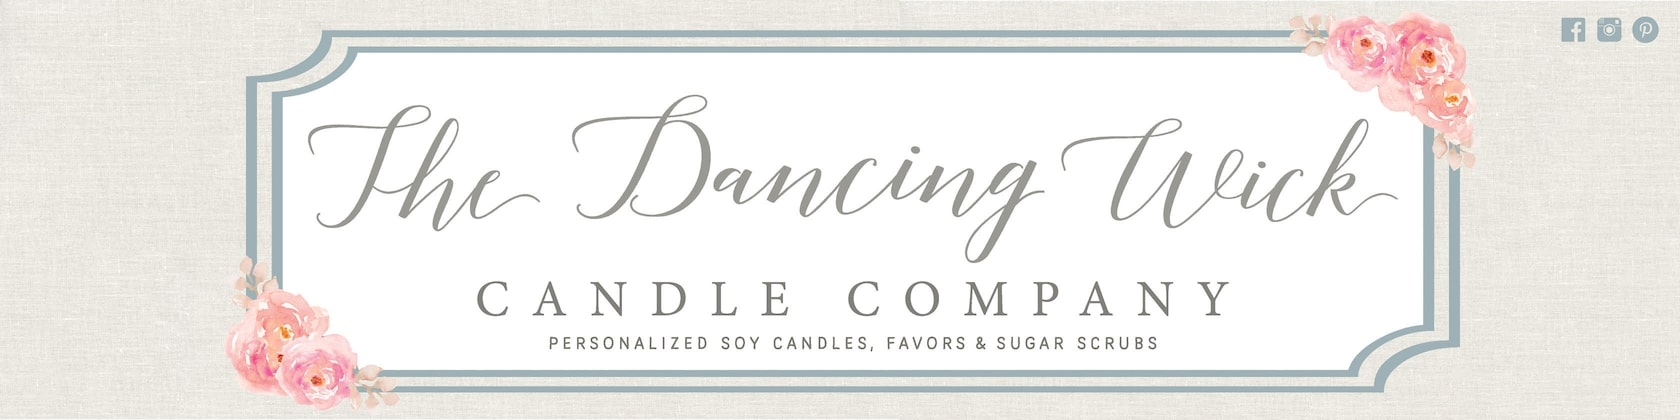 Personalized Soy Candles Favors Sugar Scrubs By Thedancingwick